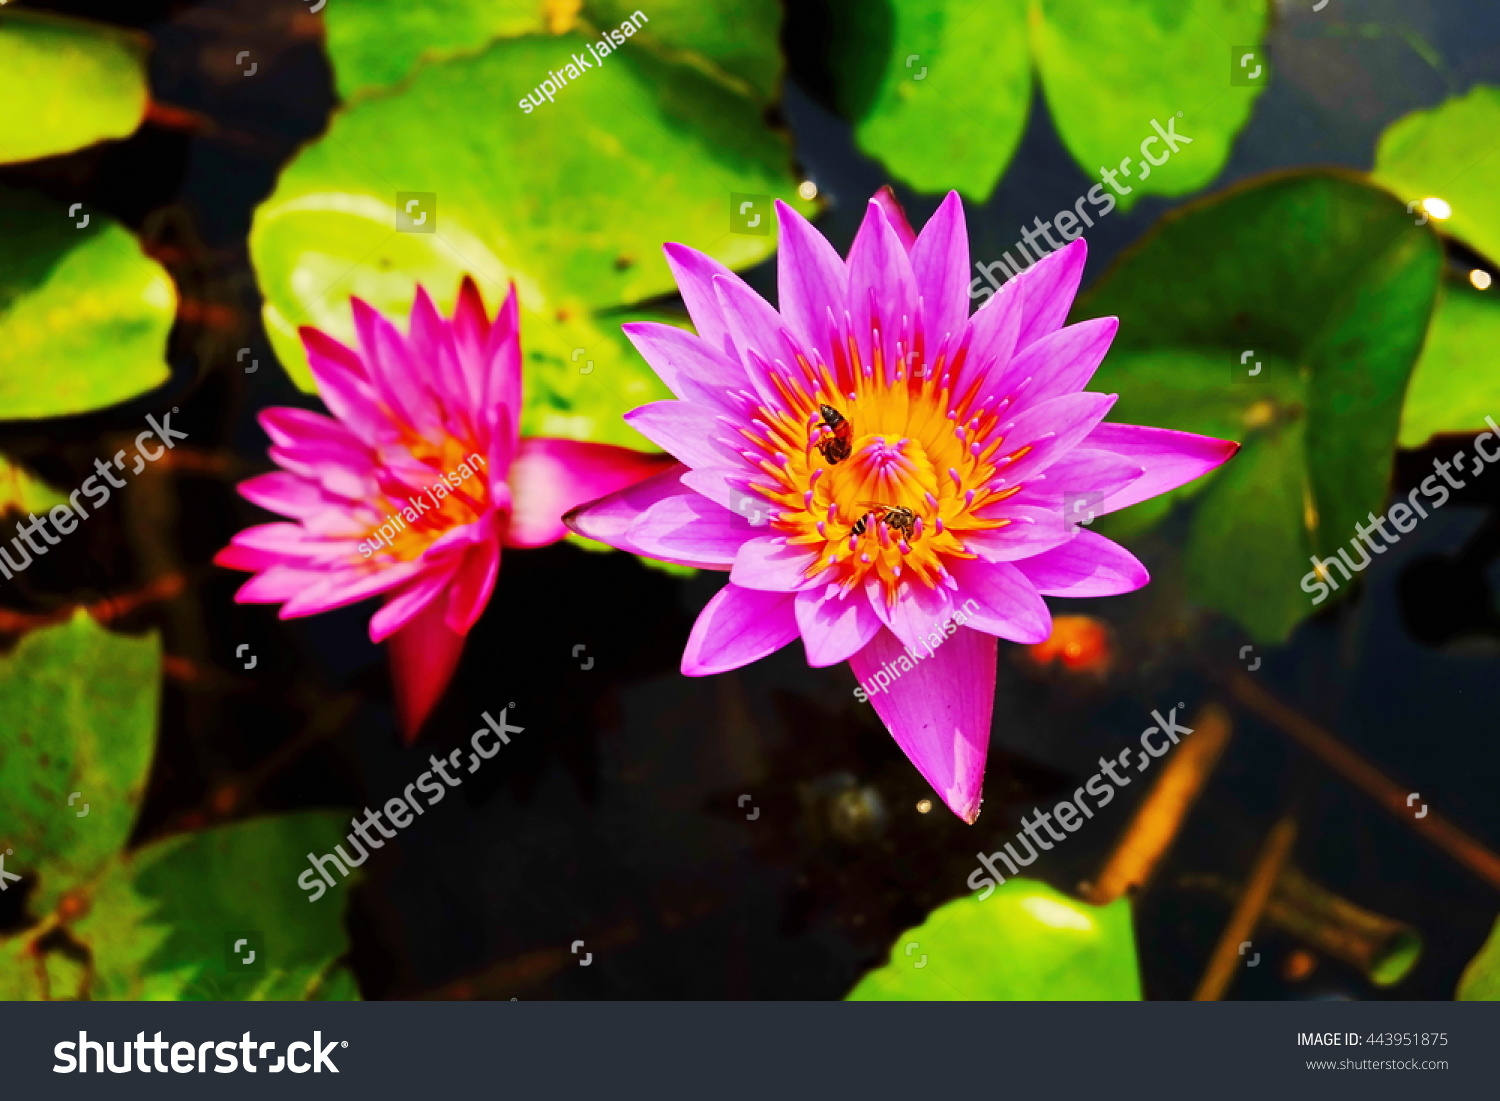 Top view lotus flower on blur stock photo royalty free 443951875 top view of lotus flower on blur and low lighting background izmirmasajfo